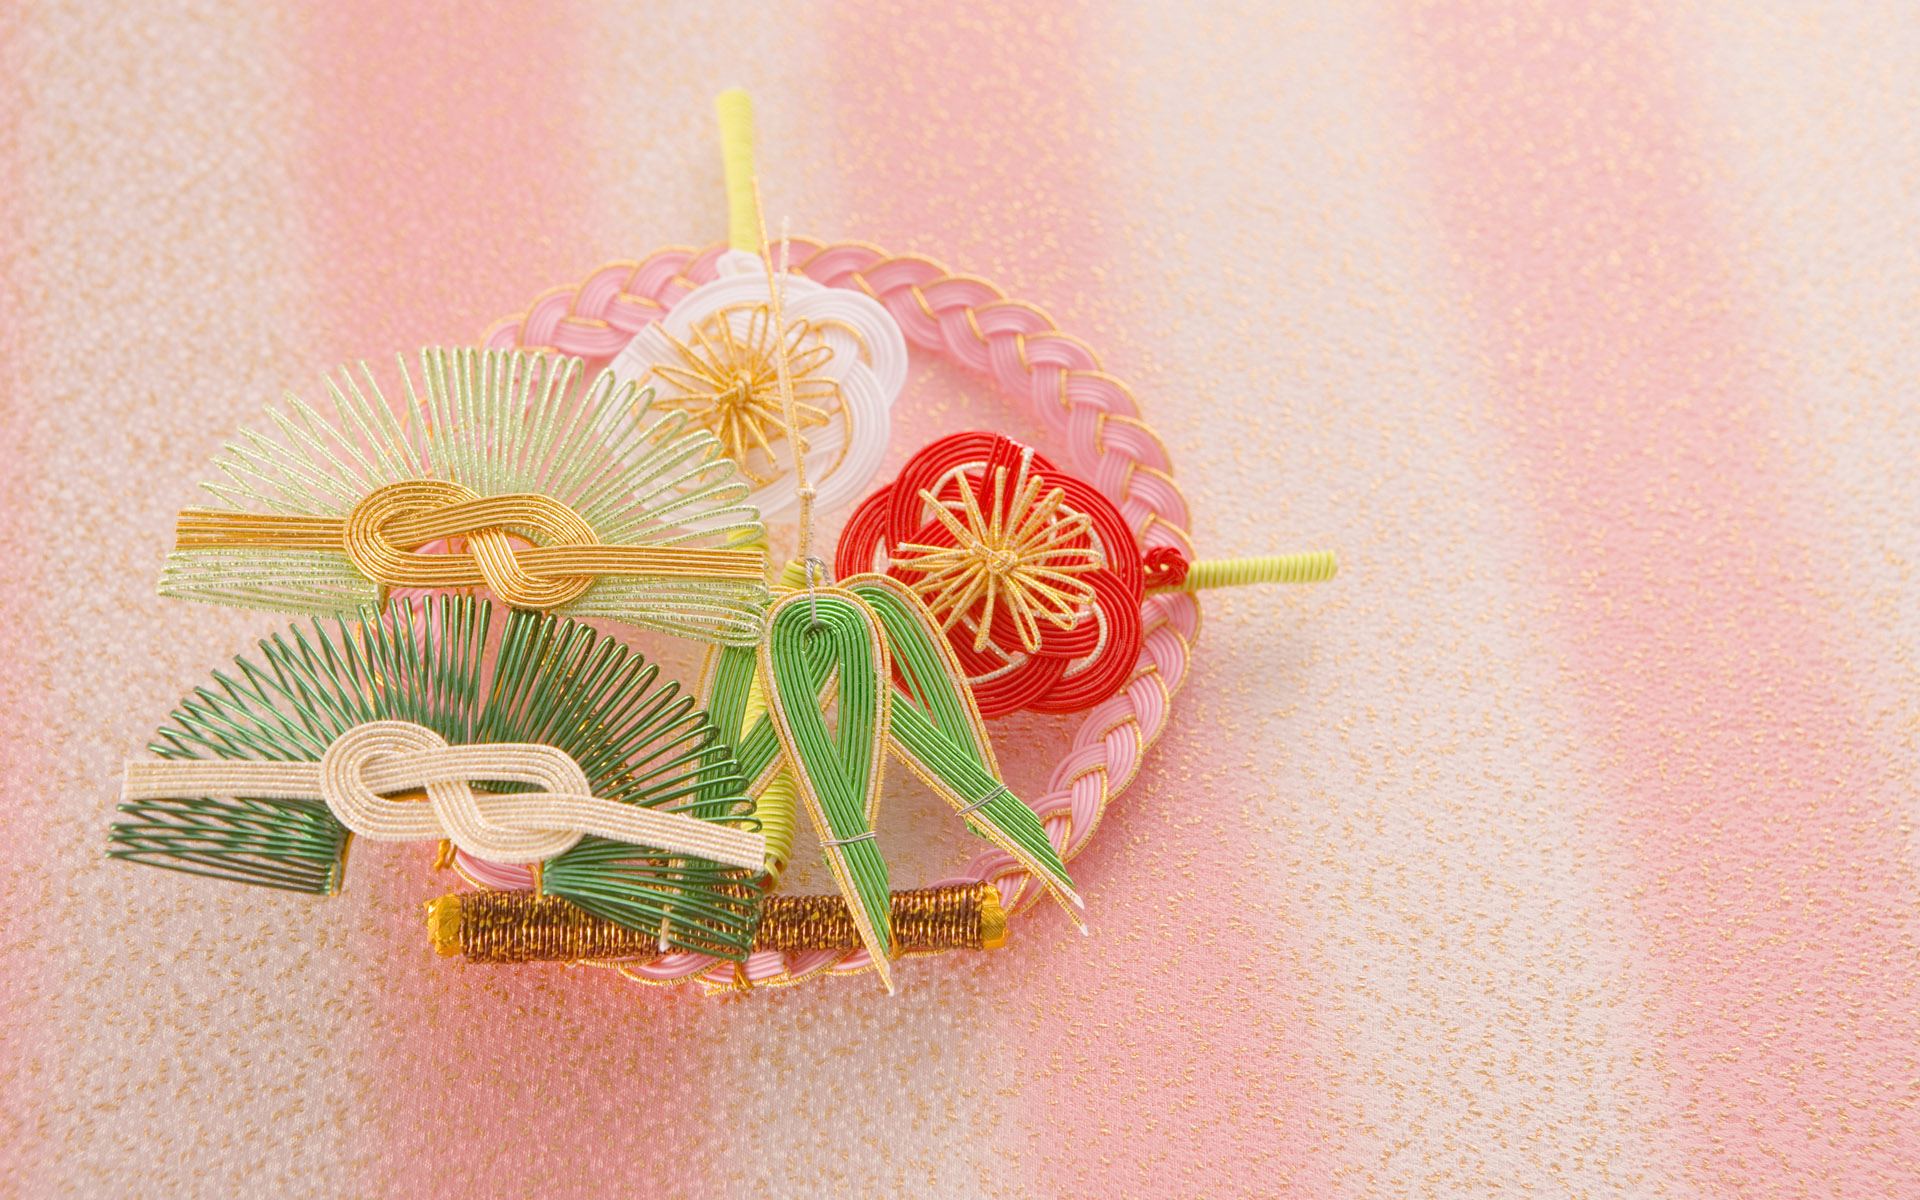 Japanese New Year and cultural material 9548